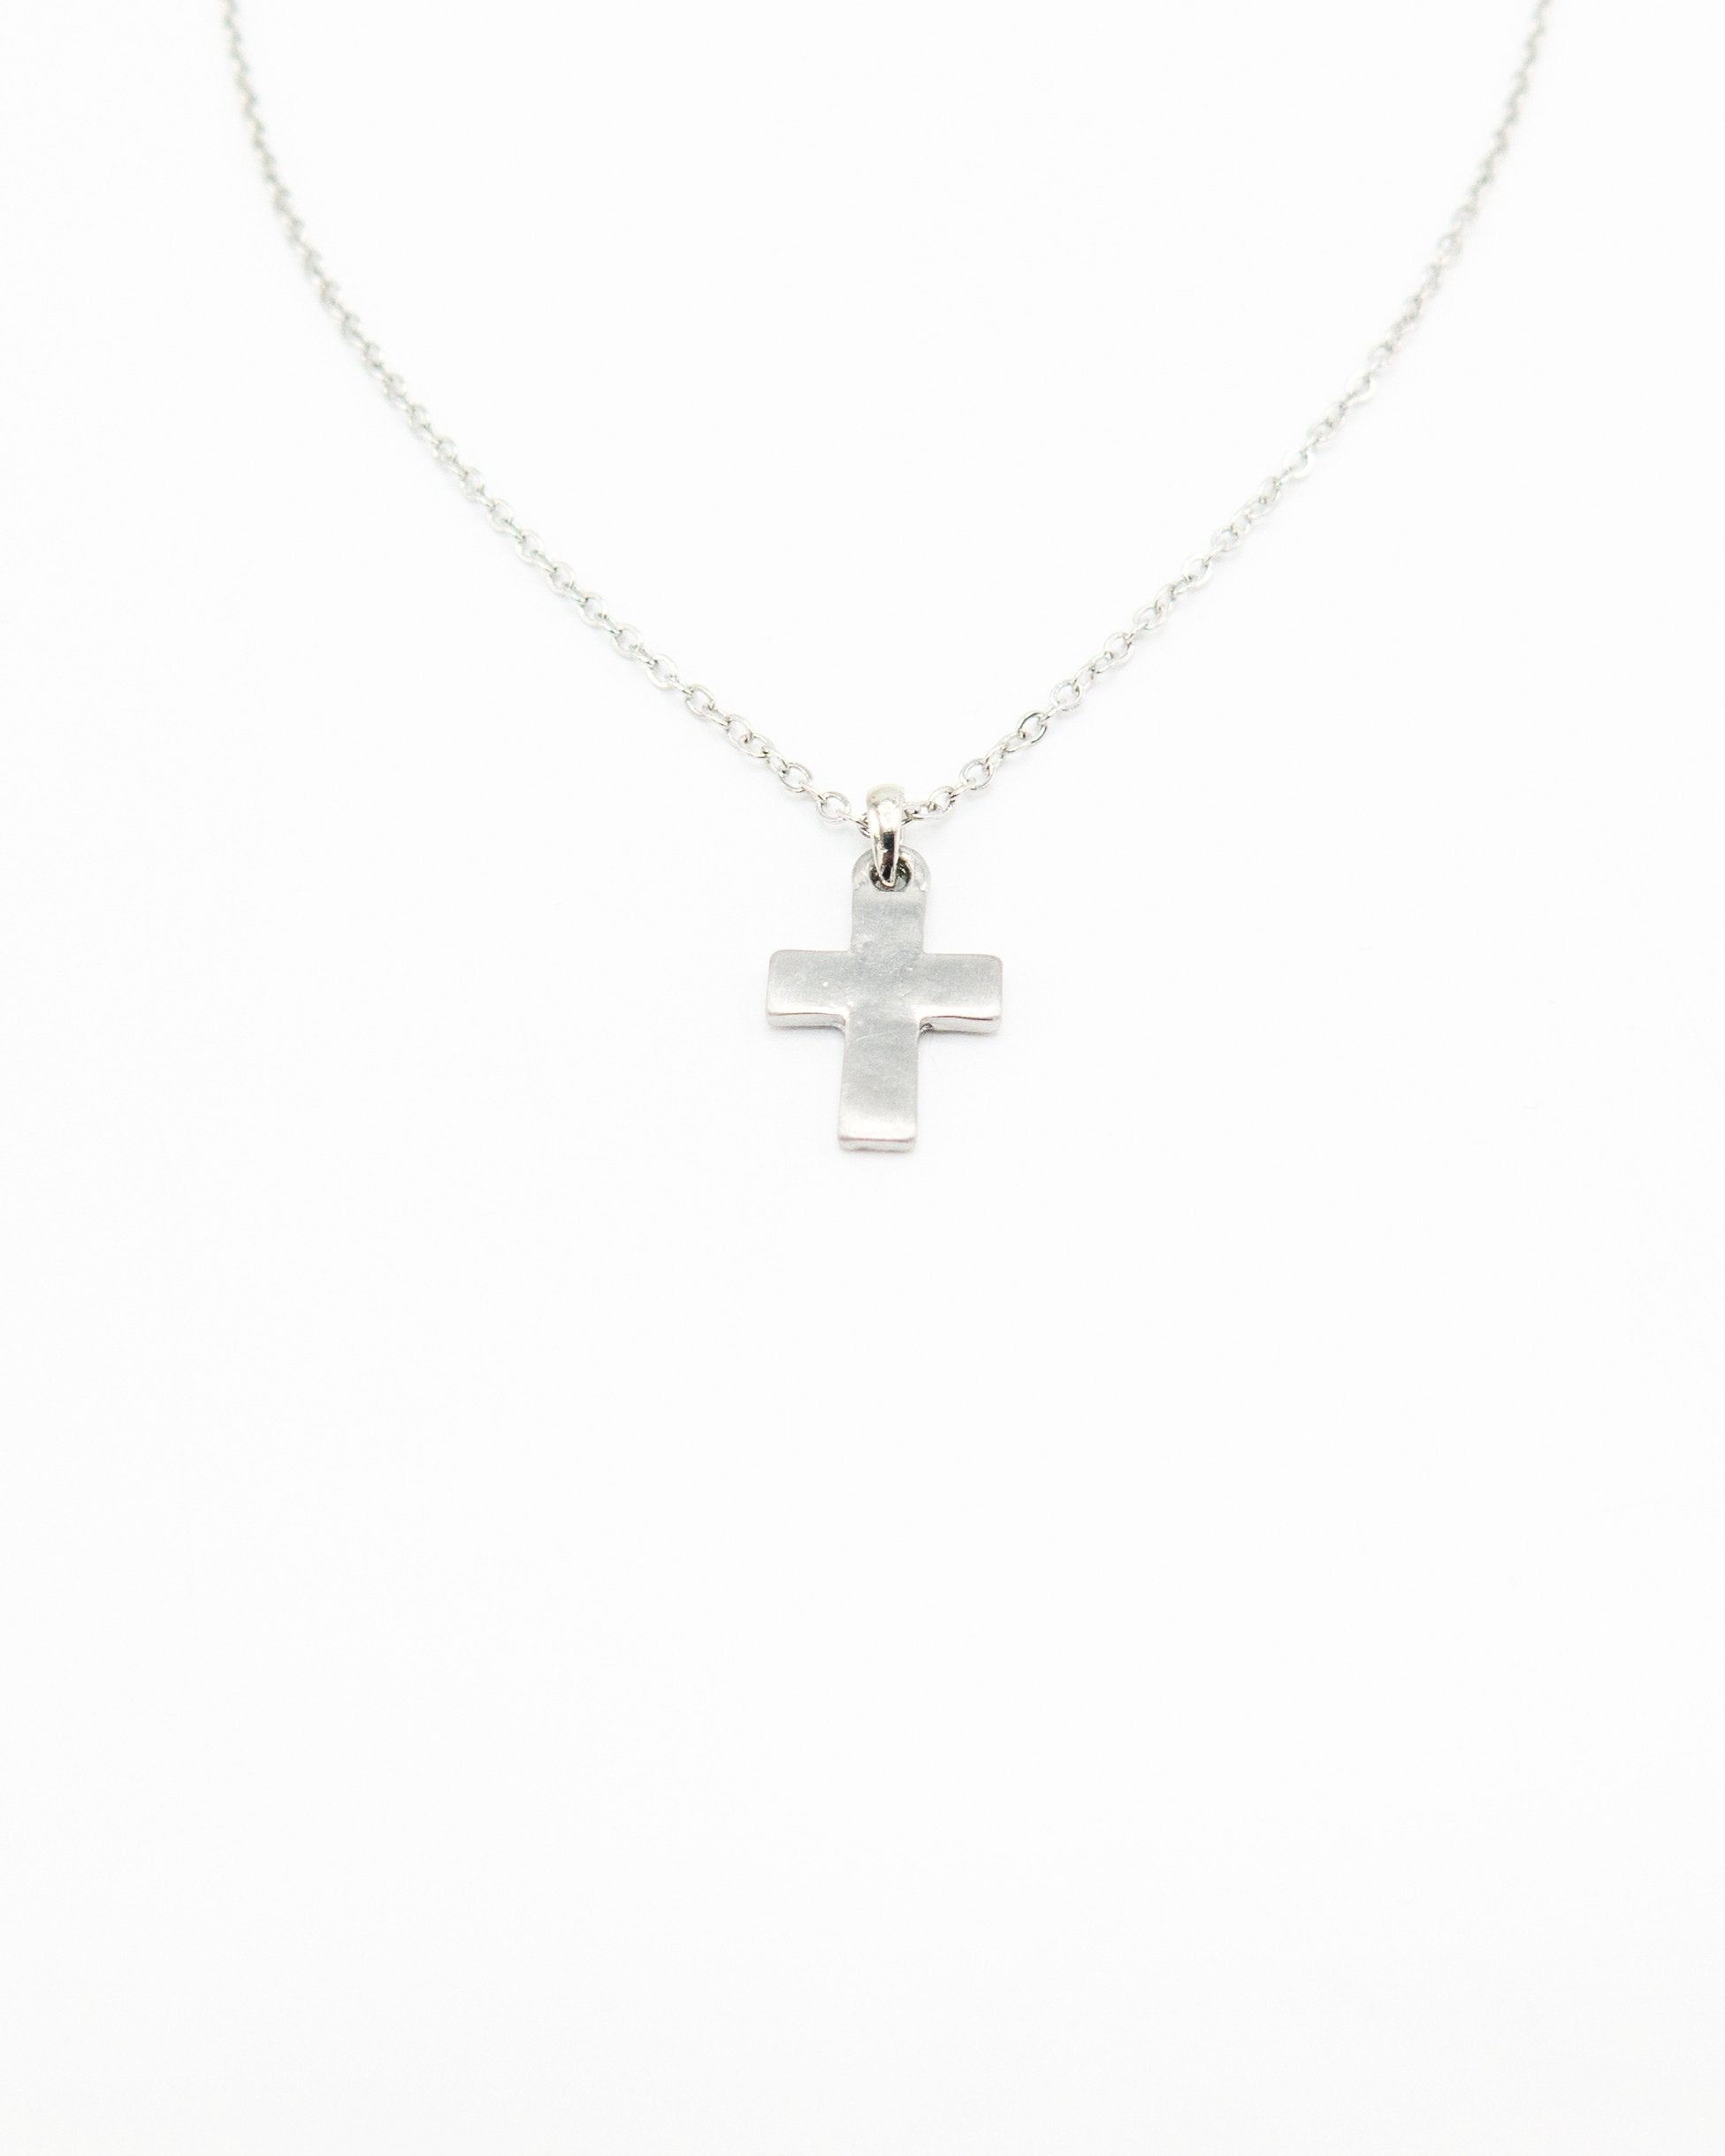 Small Silver Brushed Cross Necklace